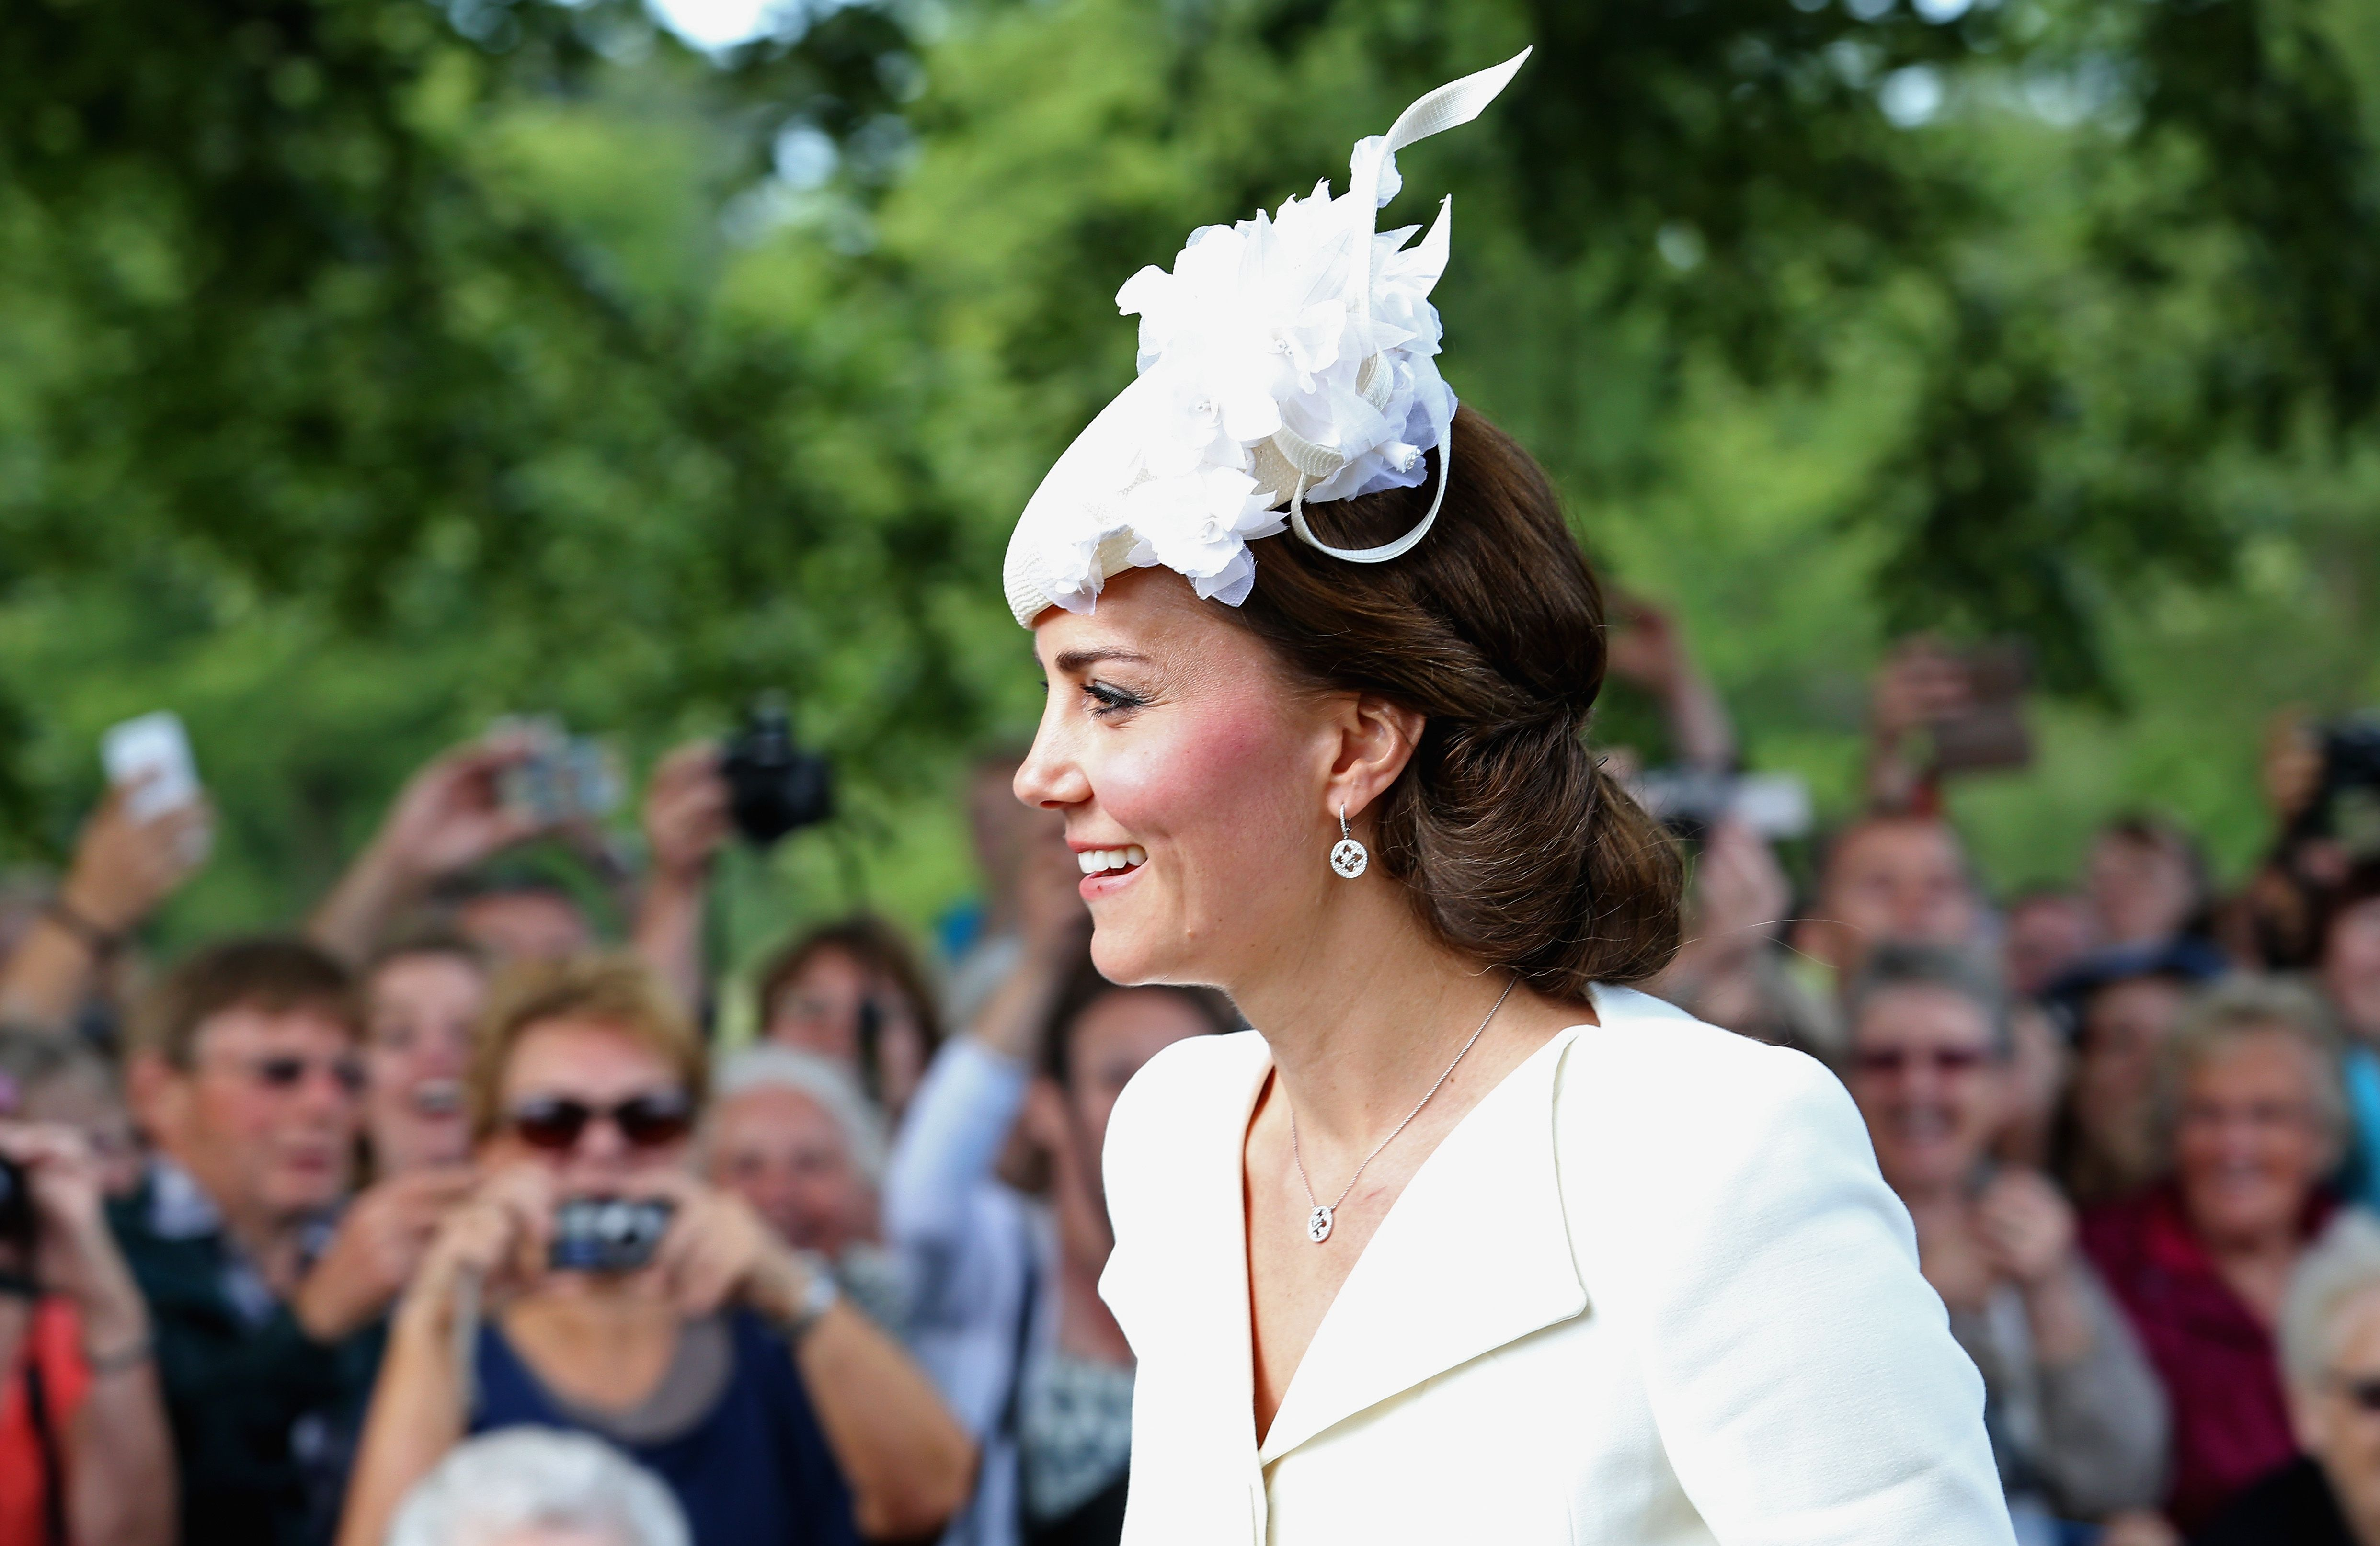 Kate Middleton Jewelry - How to Buy Kate's Favorite Earrings